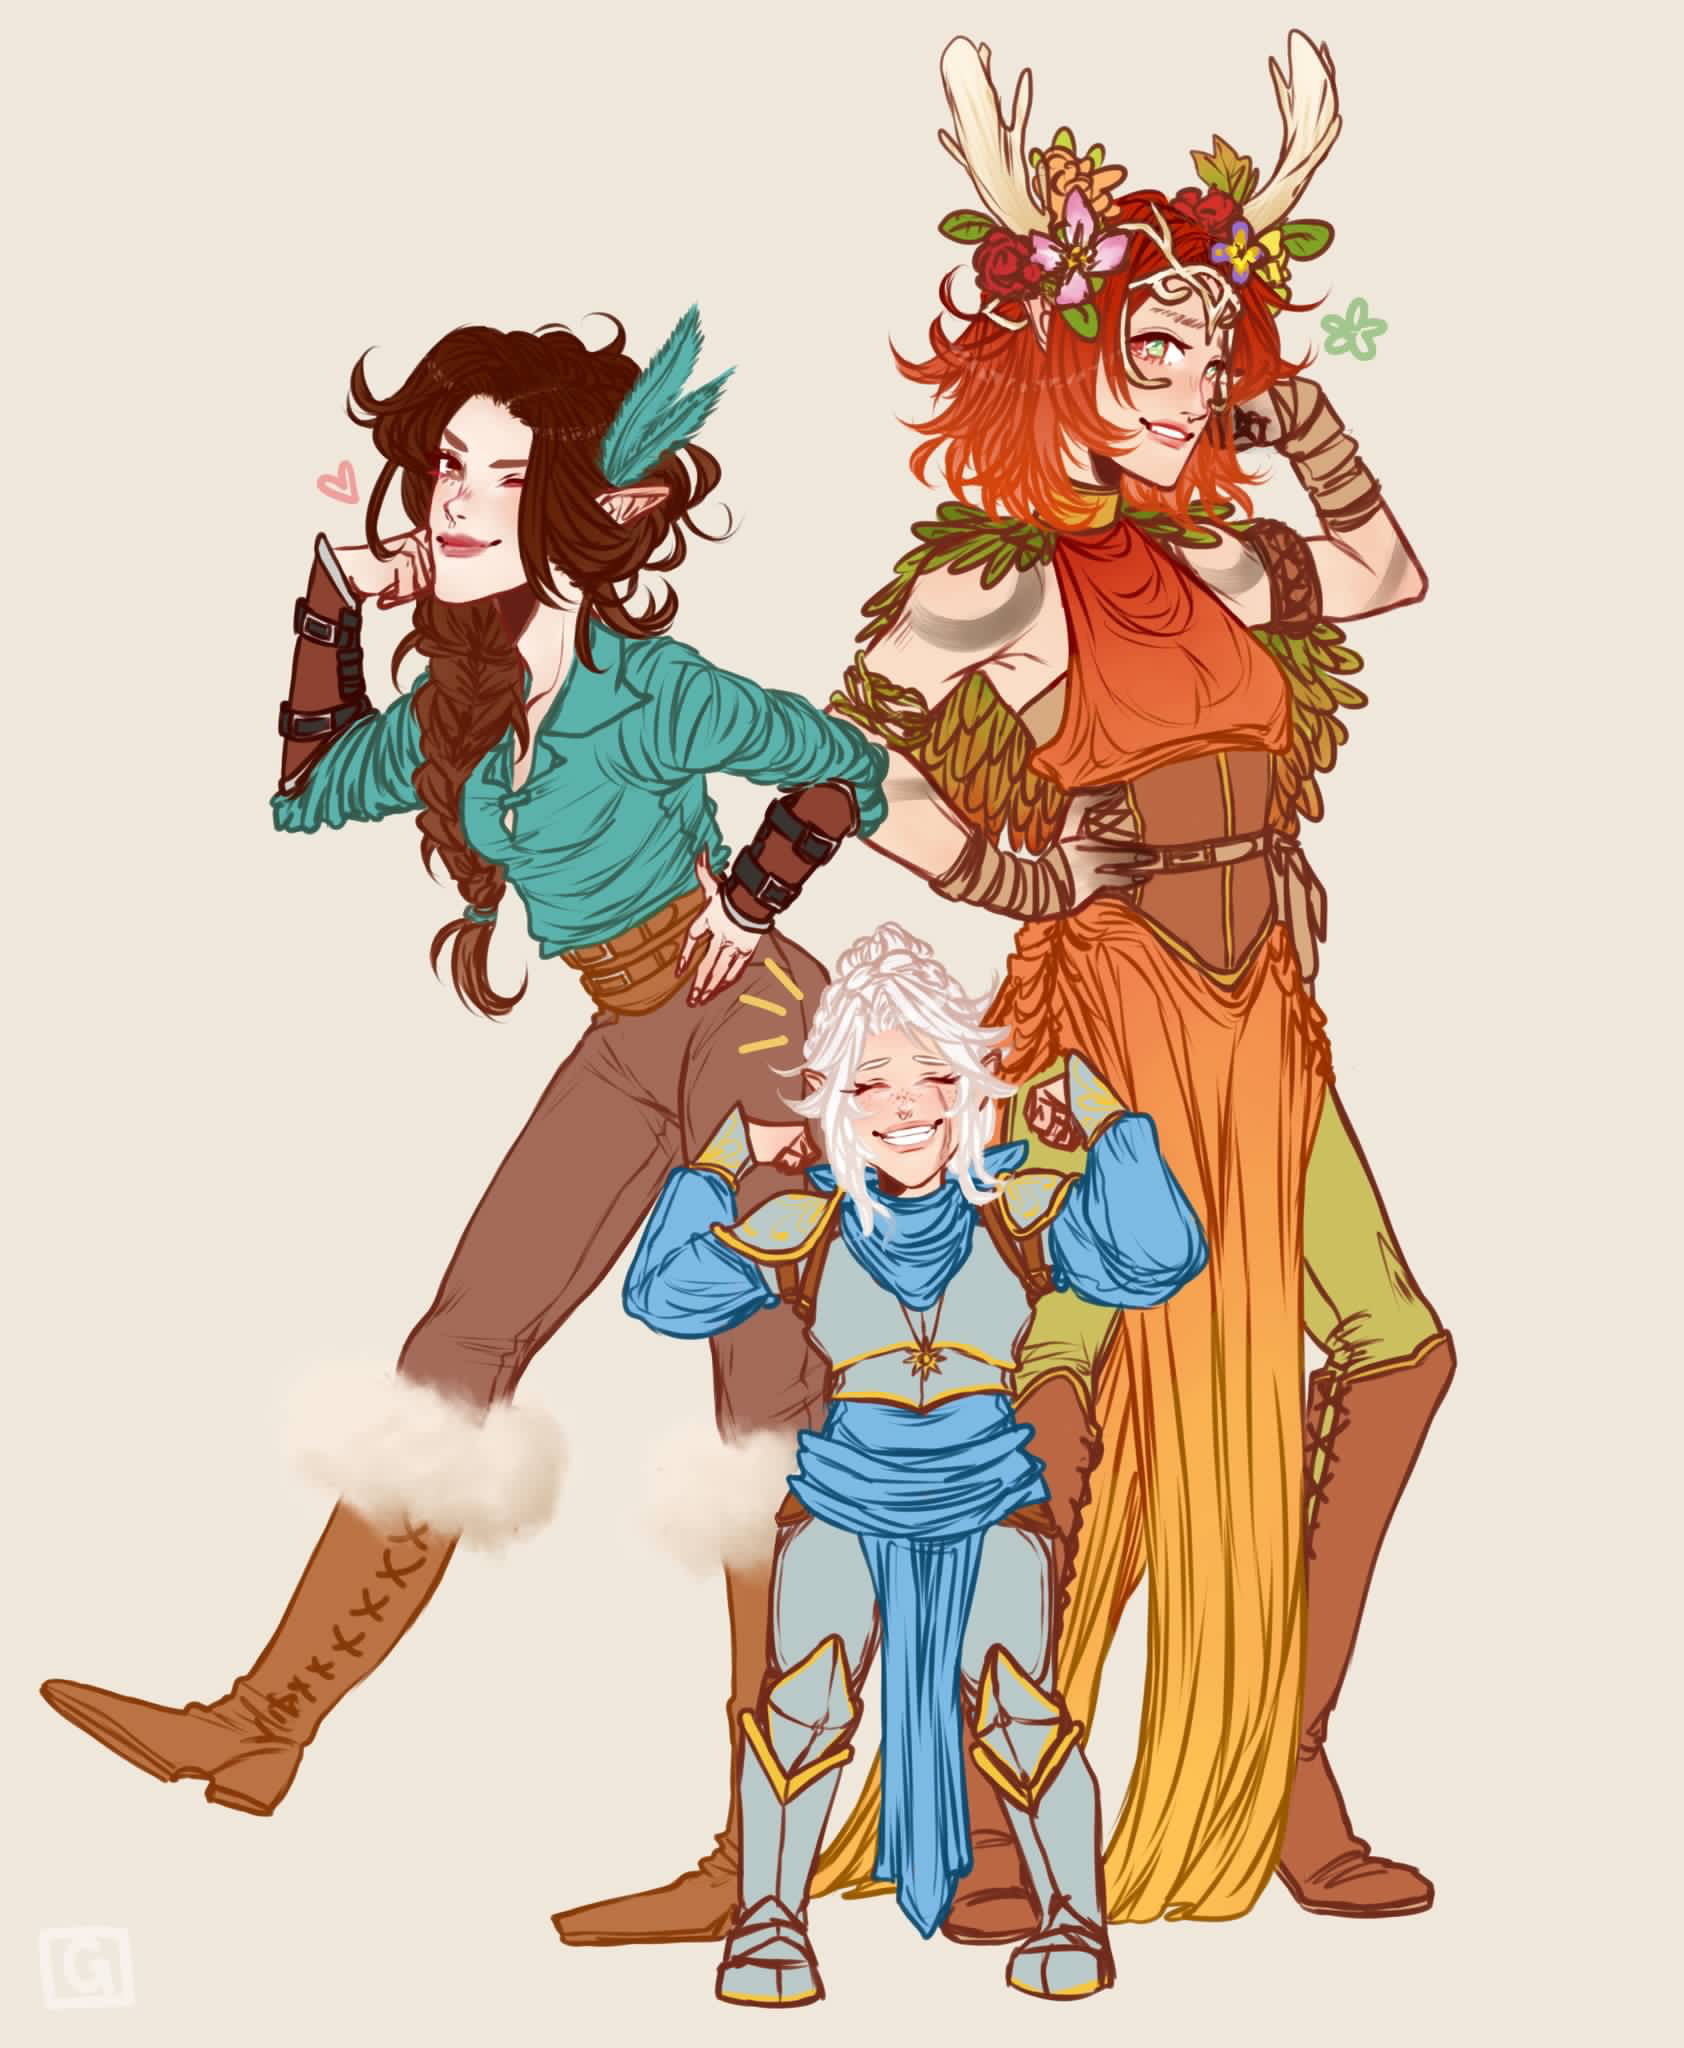 Keyleth, Vex, and Pike from Vox Machina and Critical Role